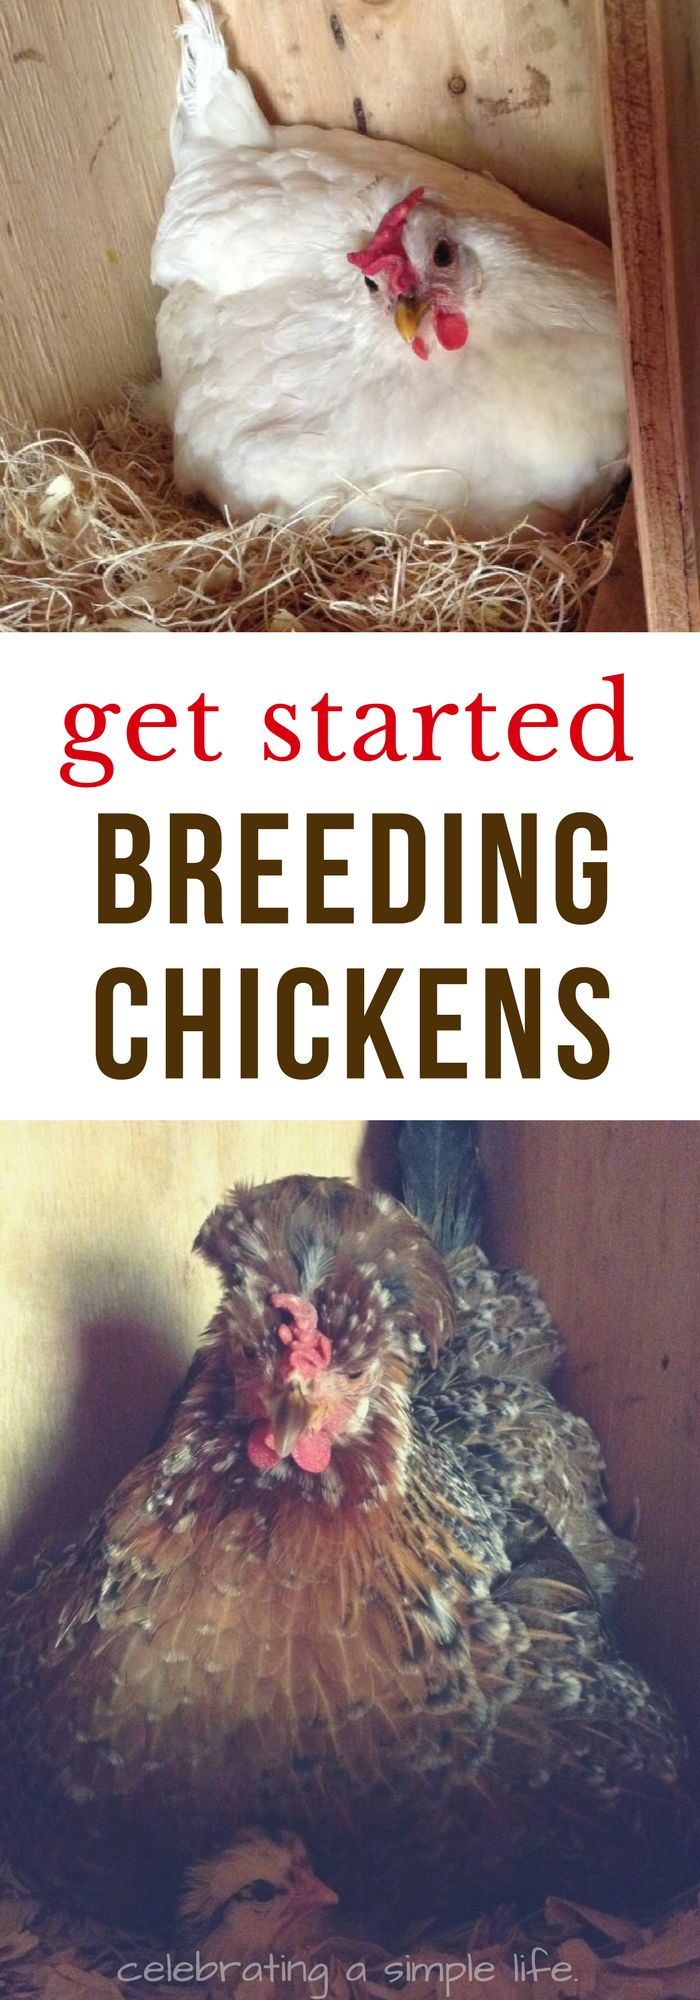 BEST tips for getting started profitably breeding heritage breed chickens!! #chickens #backyardchickens #homesteading #homesteadincome #heritagebreeds